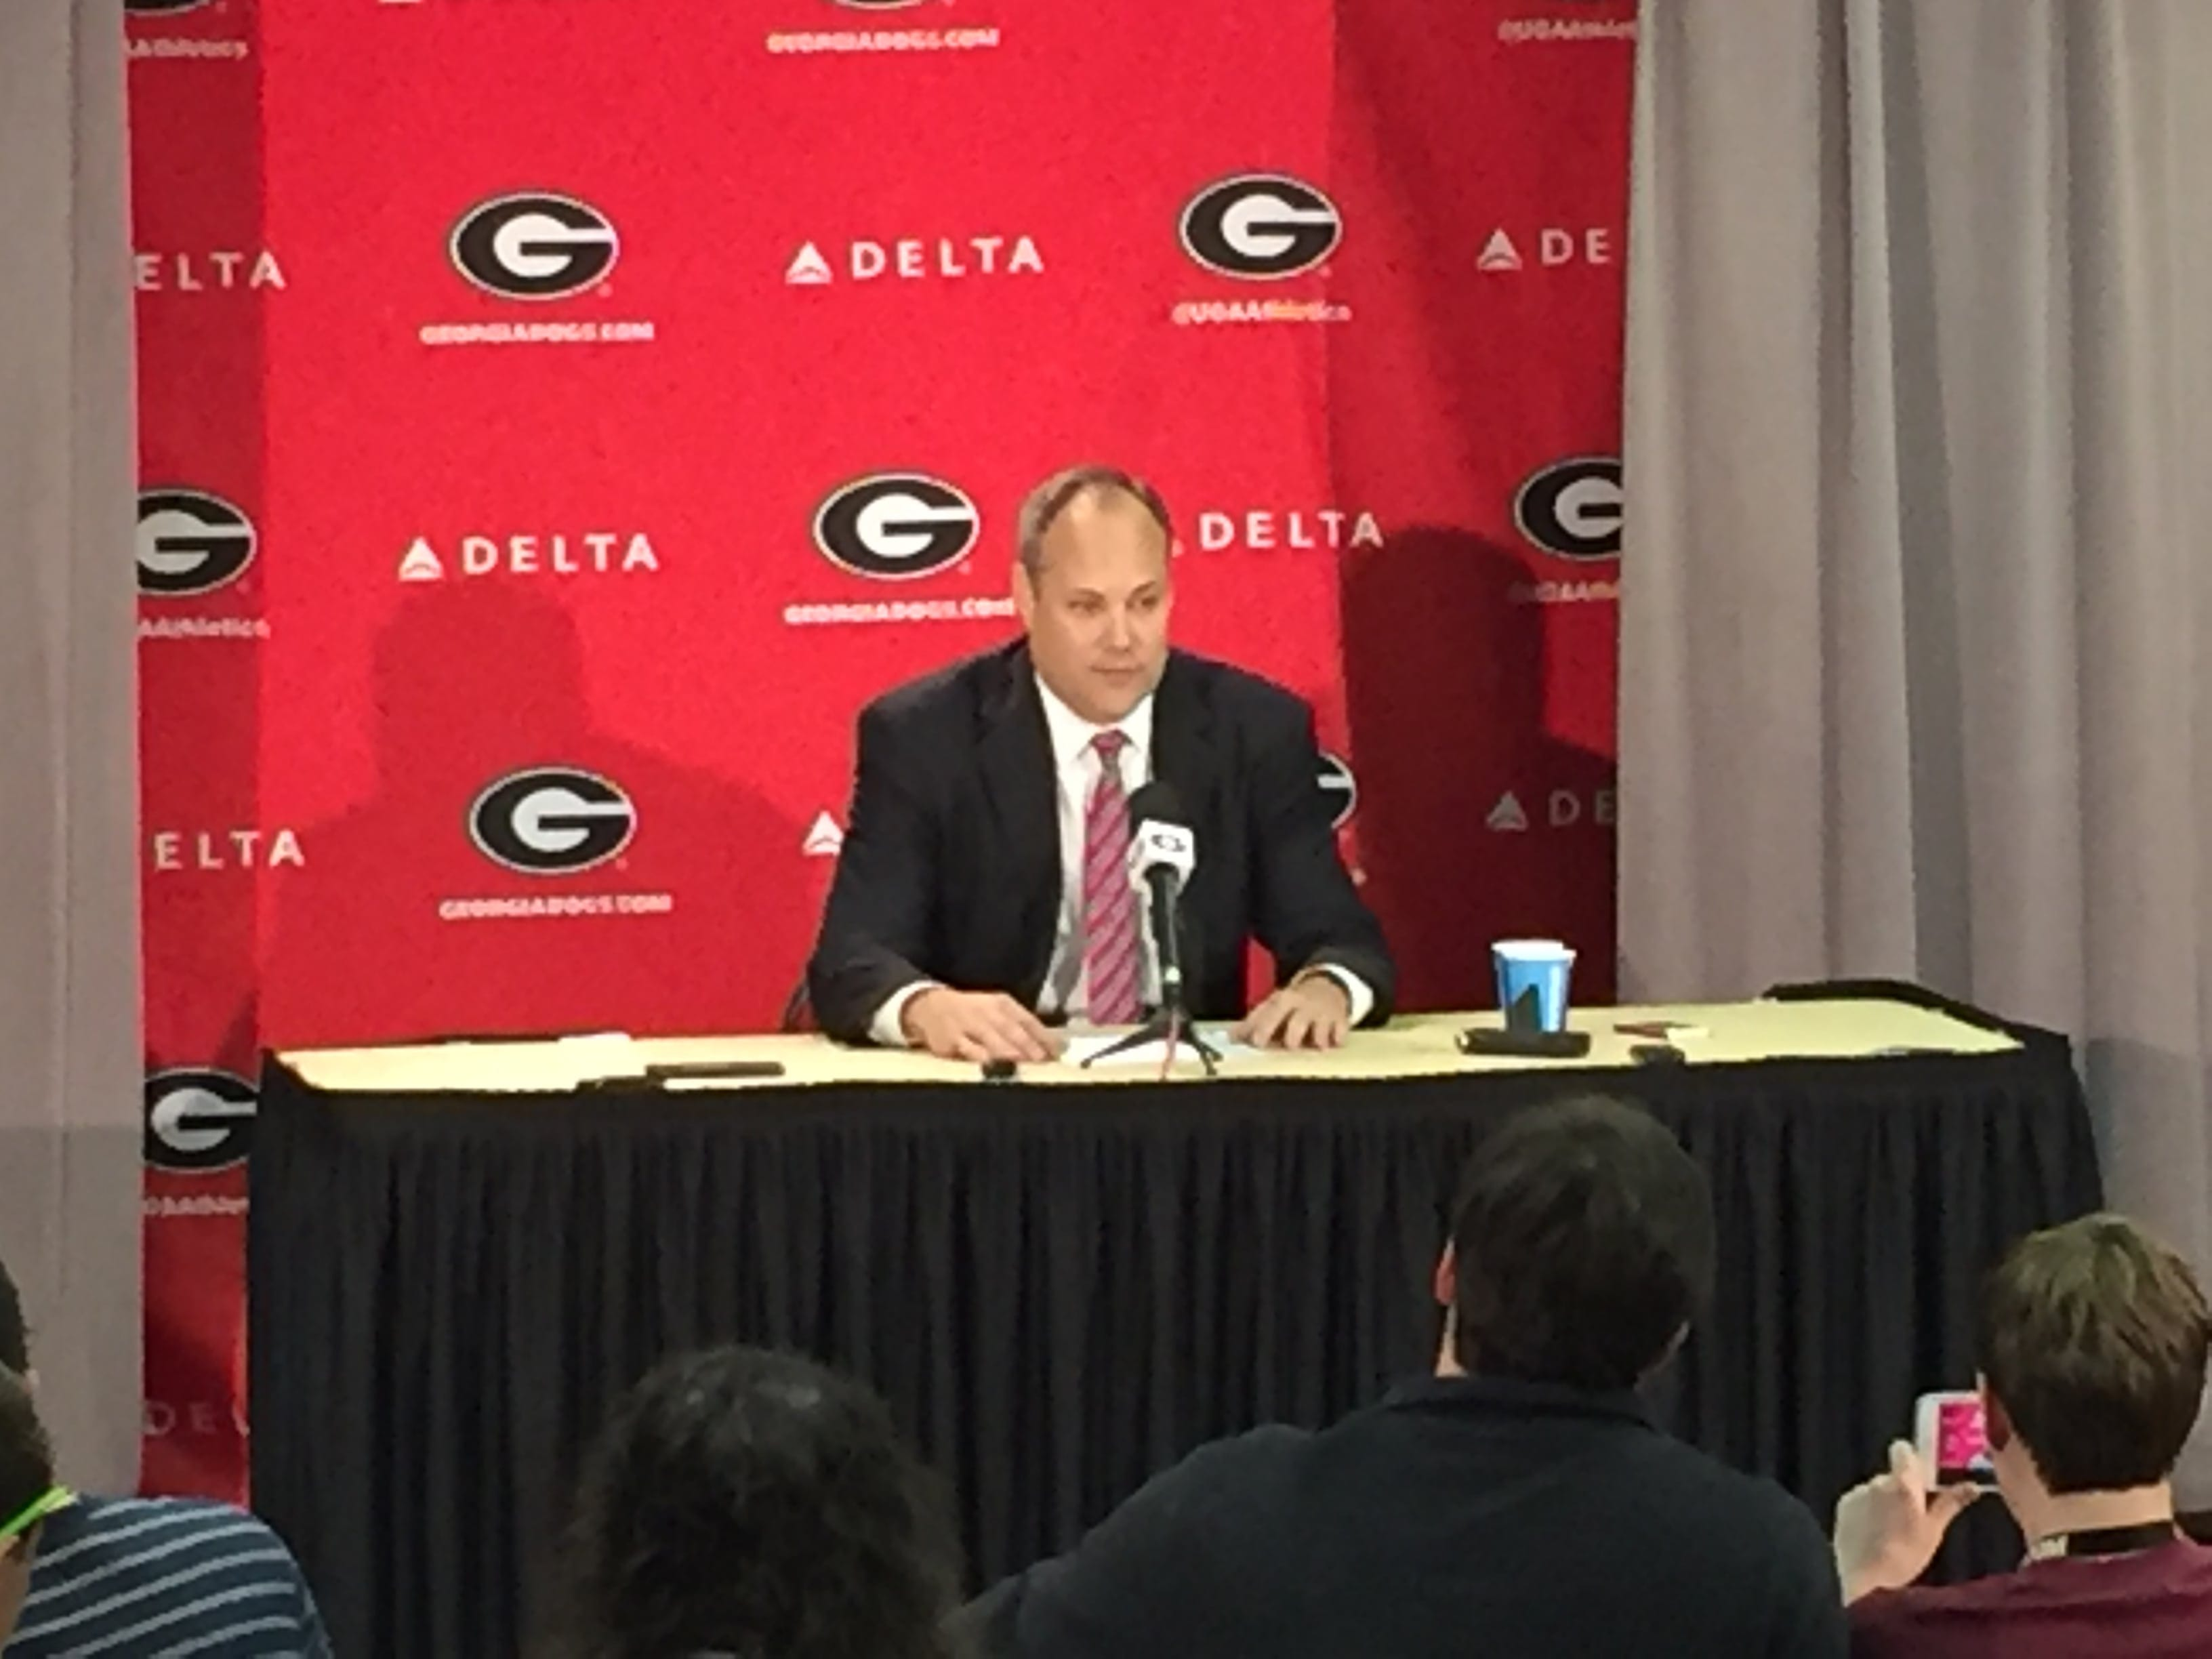 Coach Fox gets emotional over Richt's departure